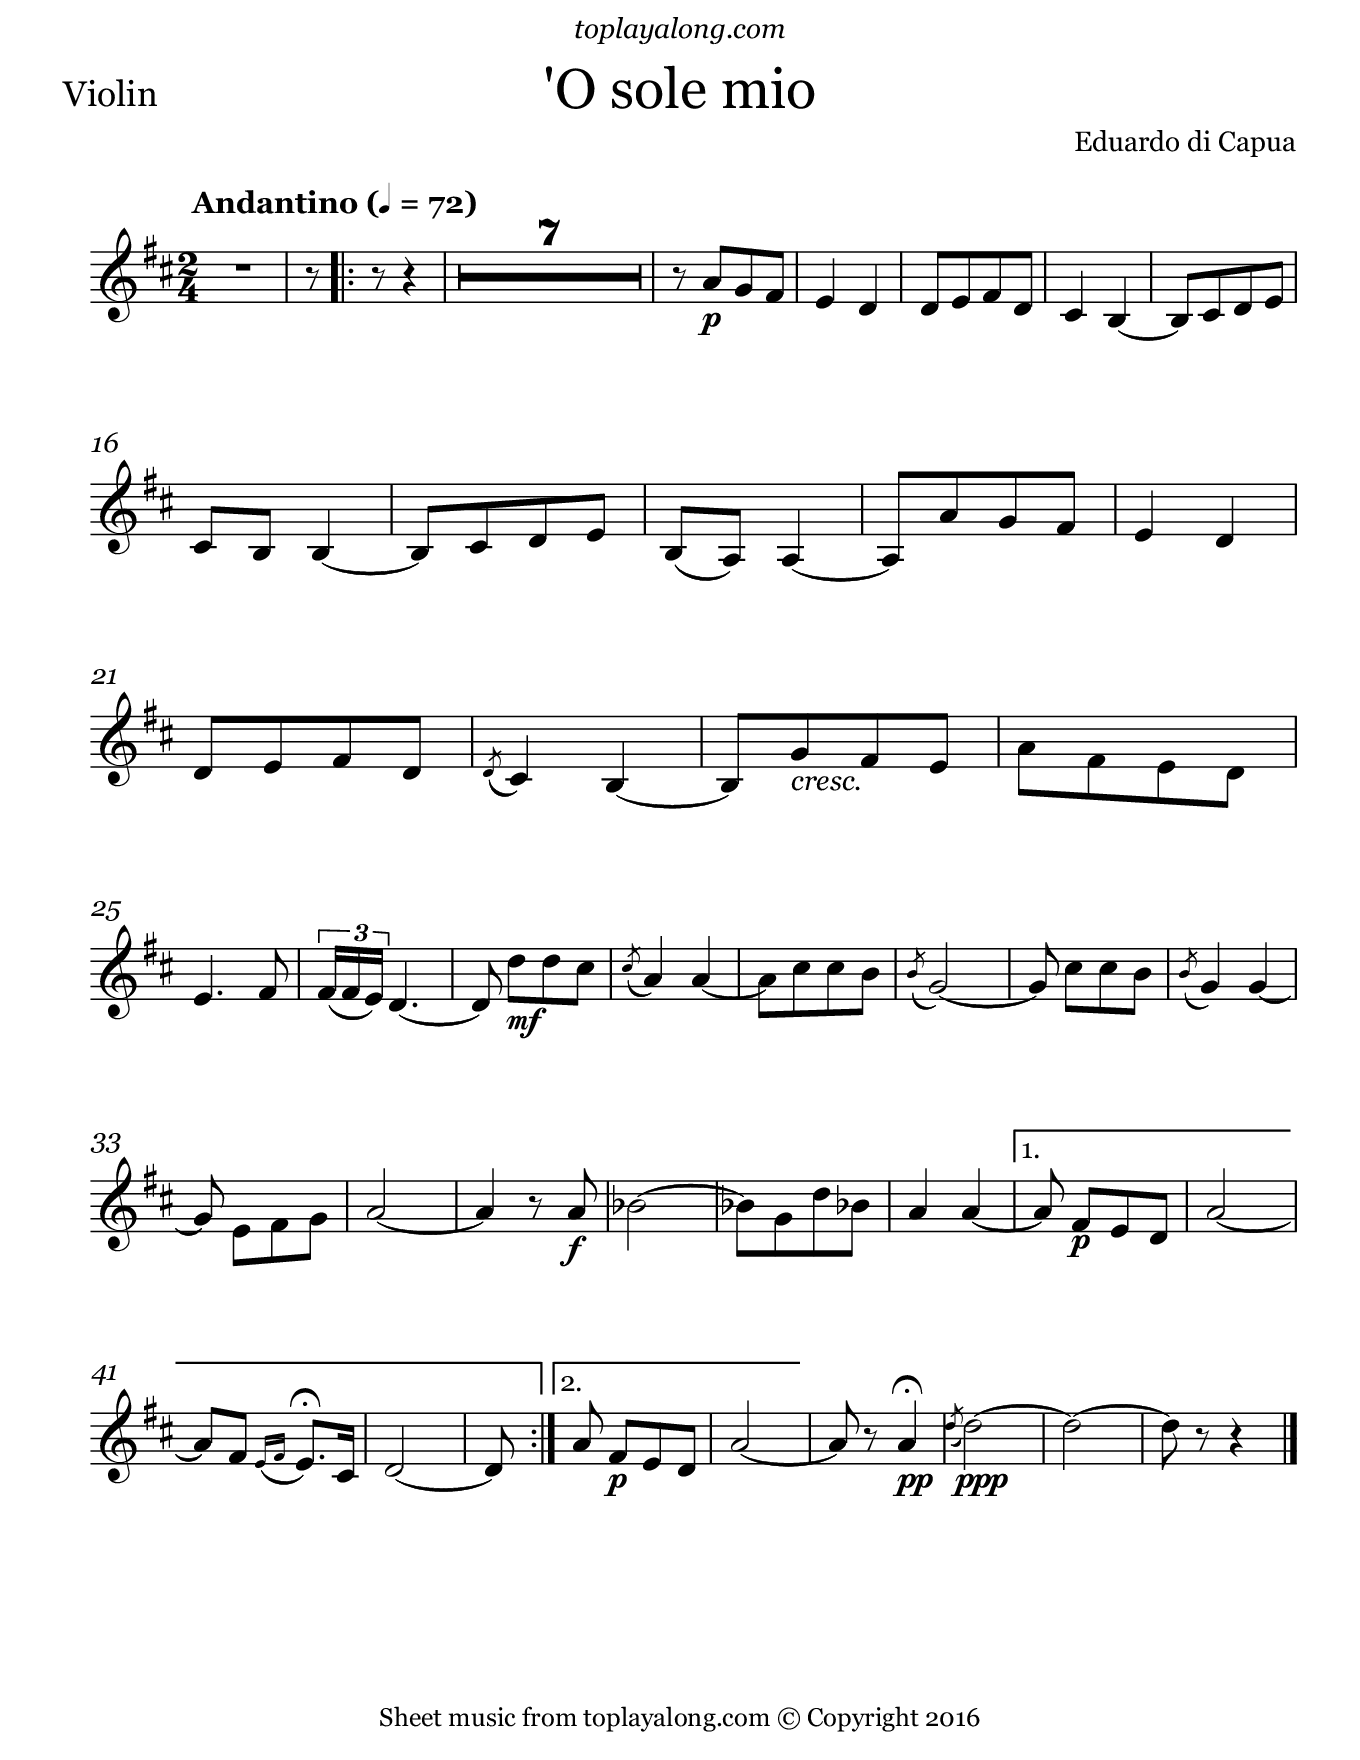 'O sole mio by Capua. Sheet music for Violin, page 1.